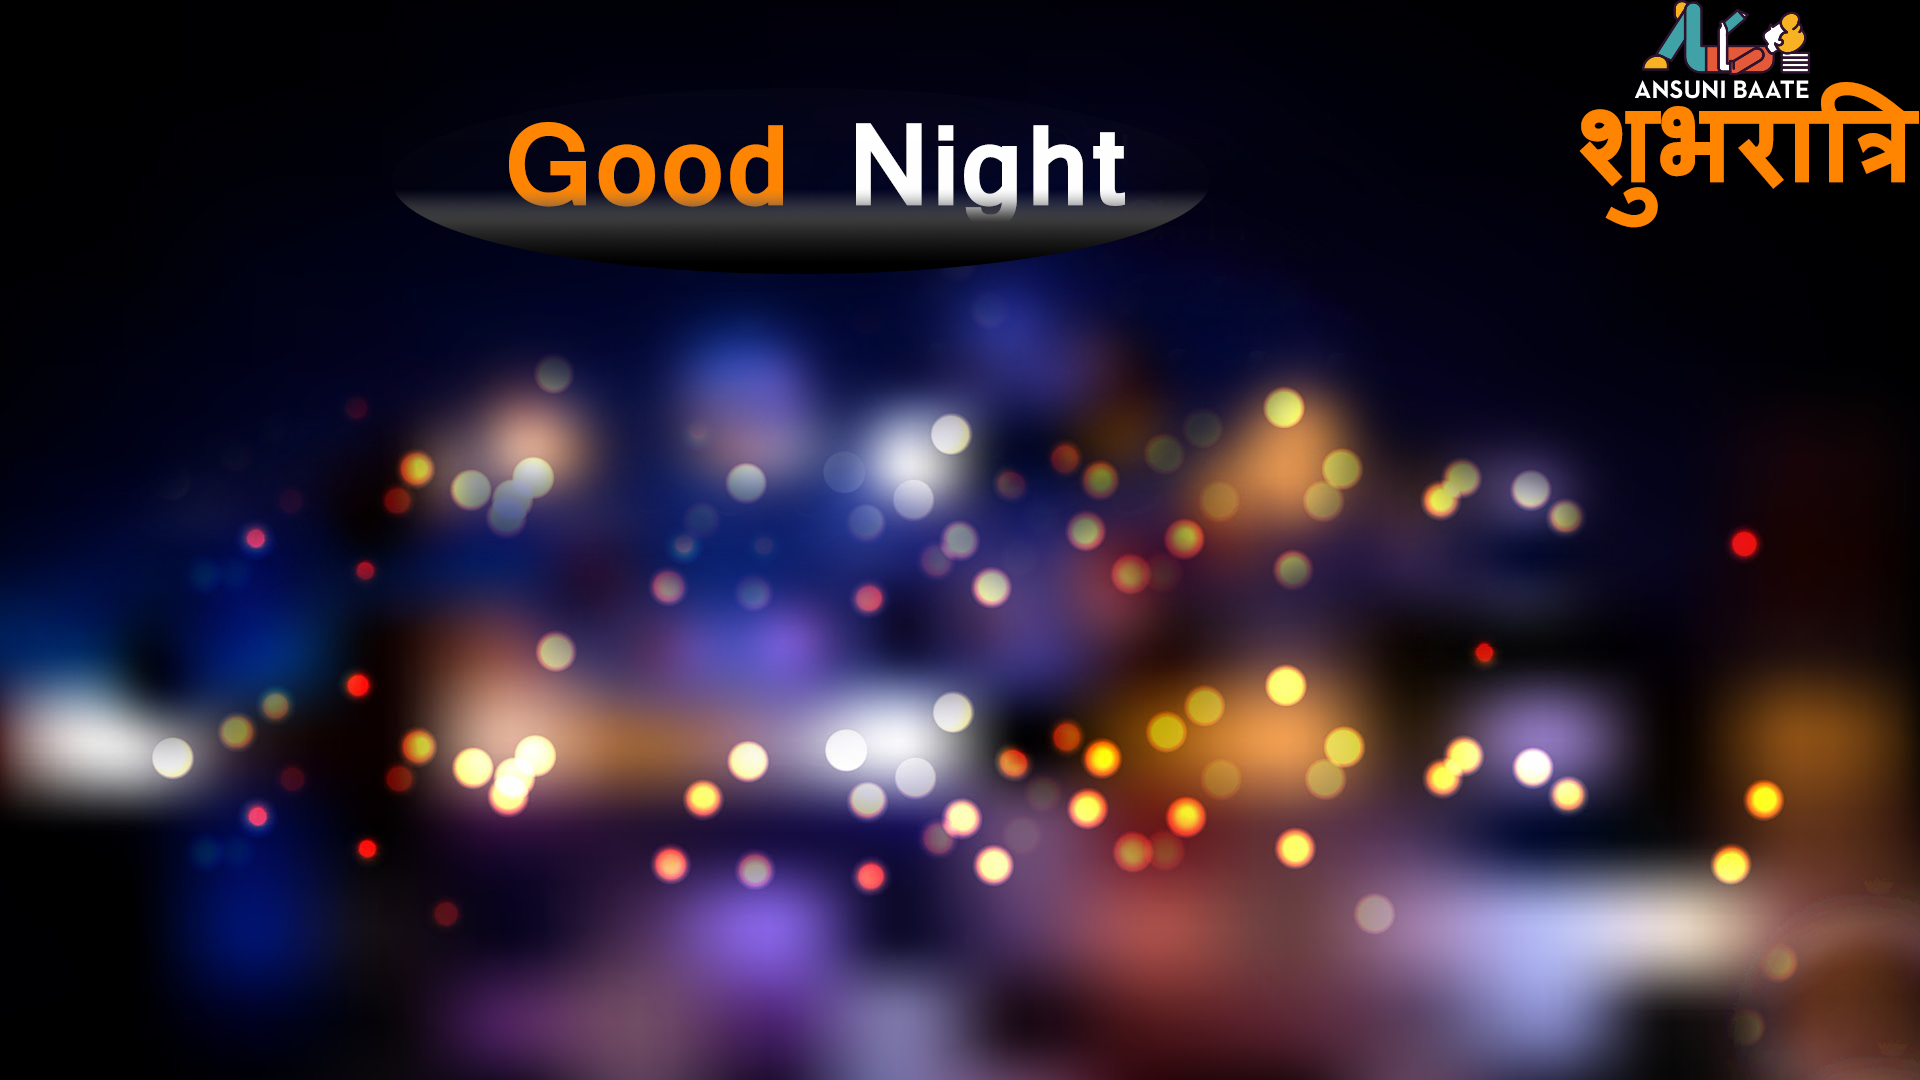 good night high-resolution wallpaper good night wishes wallpaper pic image download शुभरात्रि इमेज